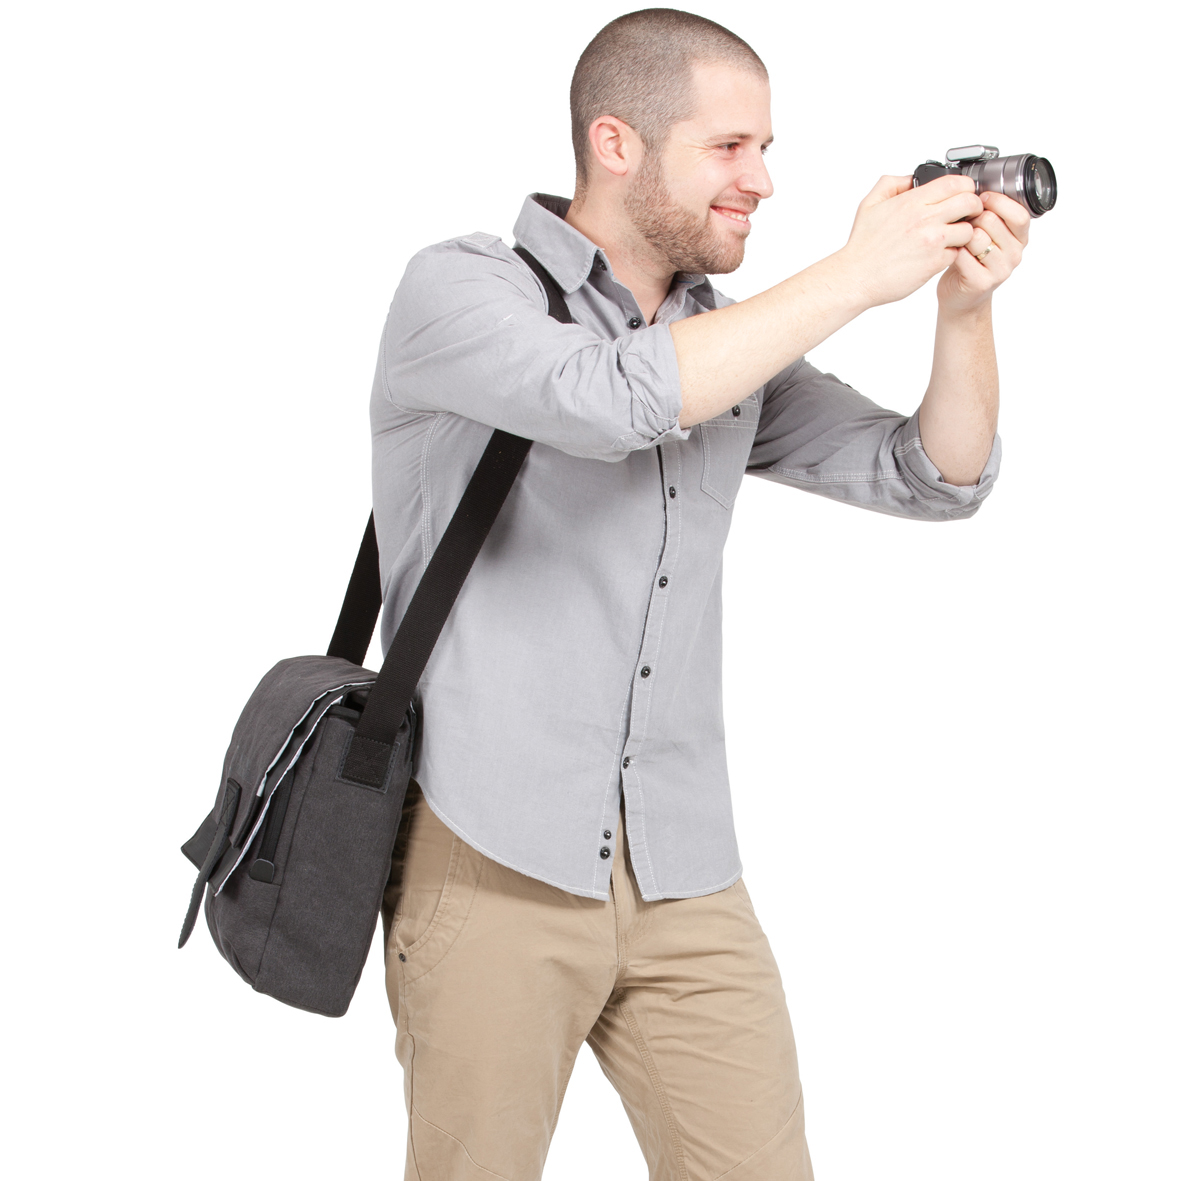 Slim Shoulder Bag For Mirrorless Camera Vs Ipad 98